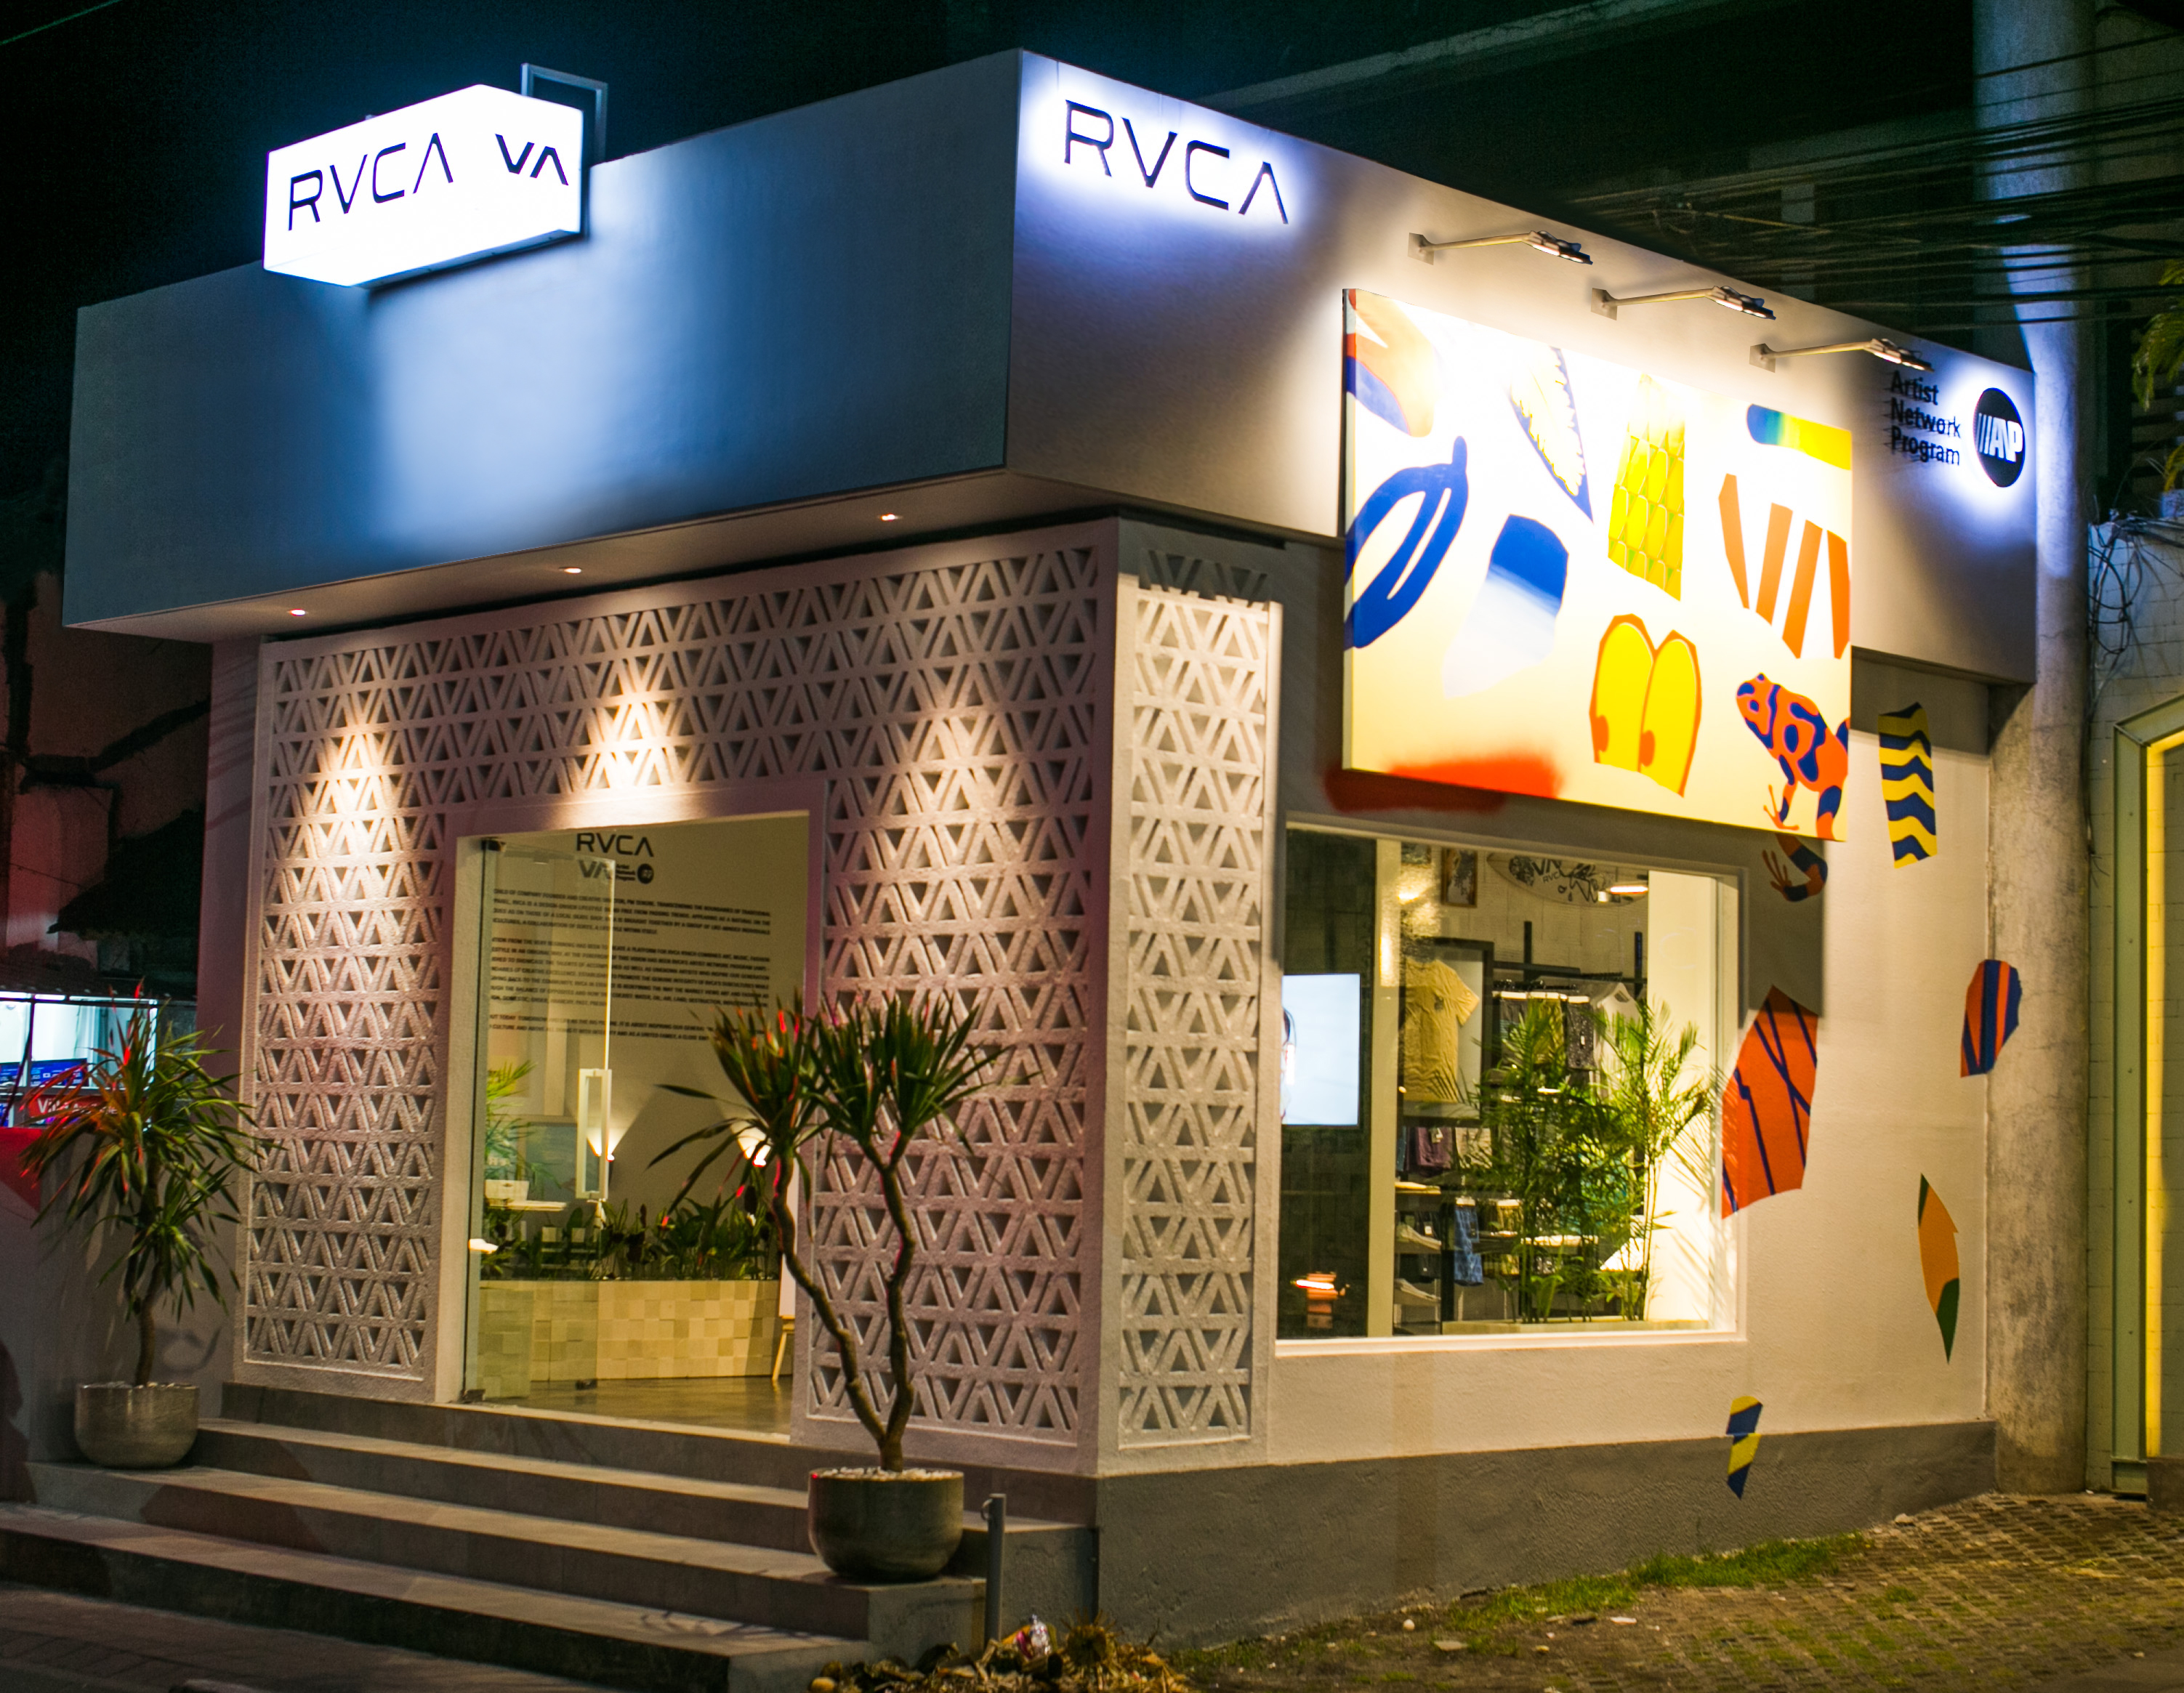 RVCA is the brainchild of company Founder and Creative Director, PM Tenore. Transcending the boundaries of traditional action sports apparel, RVCA is a .